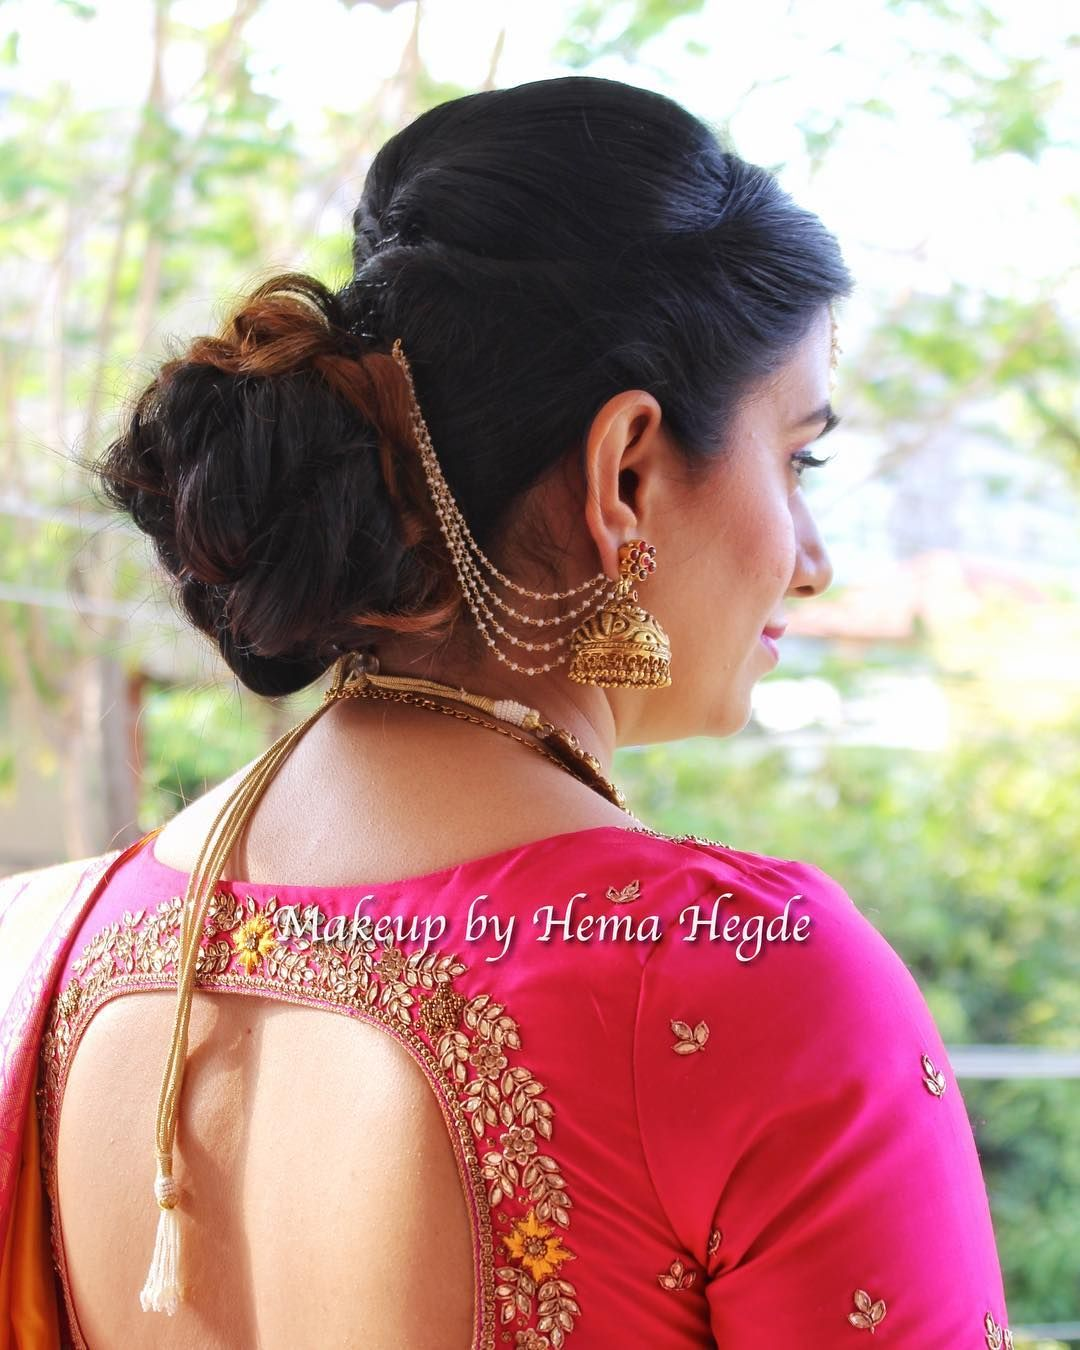 South Indian Wedding Indian Wear Pink And Yellow Silk Saree Traditional South Indian Wedd Saree Hairstyles Wedding Saree Indian Indian Wedding Hairstyles